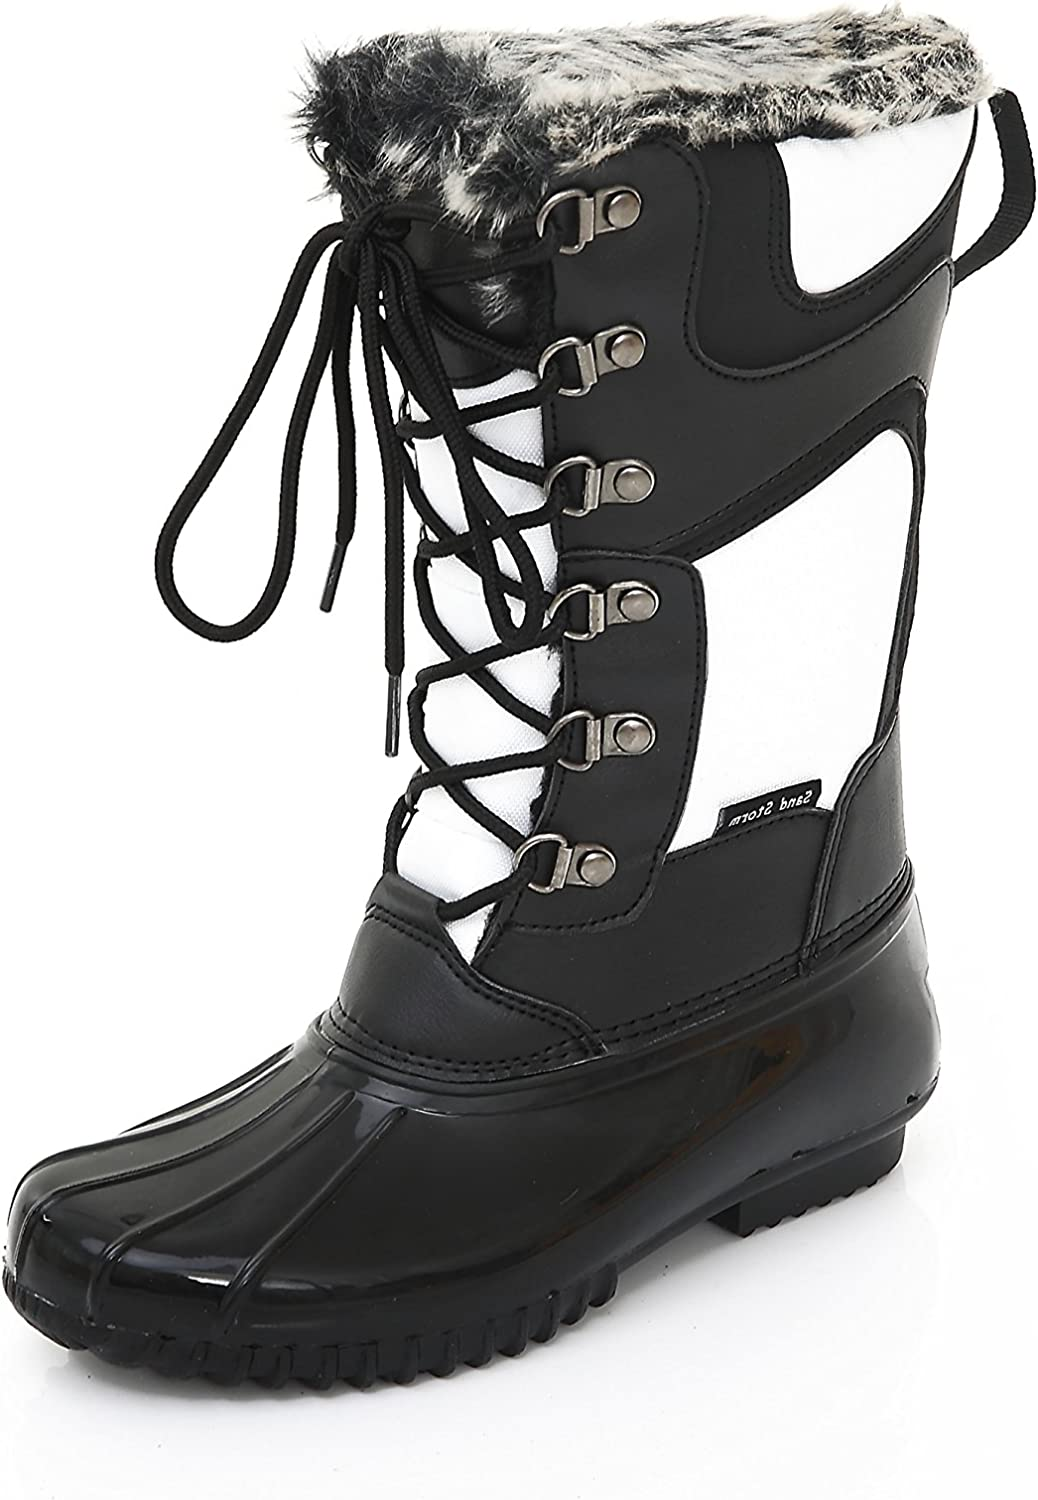 Womens Winter Snow Boots Tall - Insulated Lace-Up Closure Comfortable Weatherproof